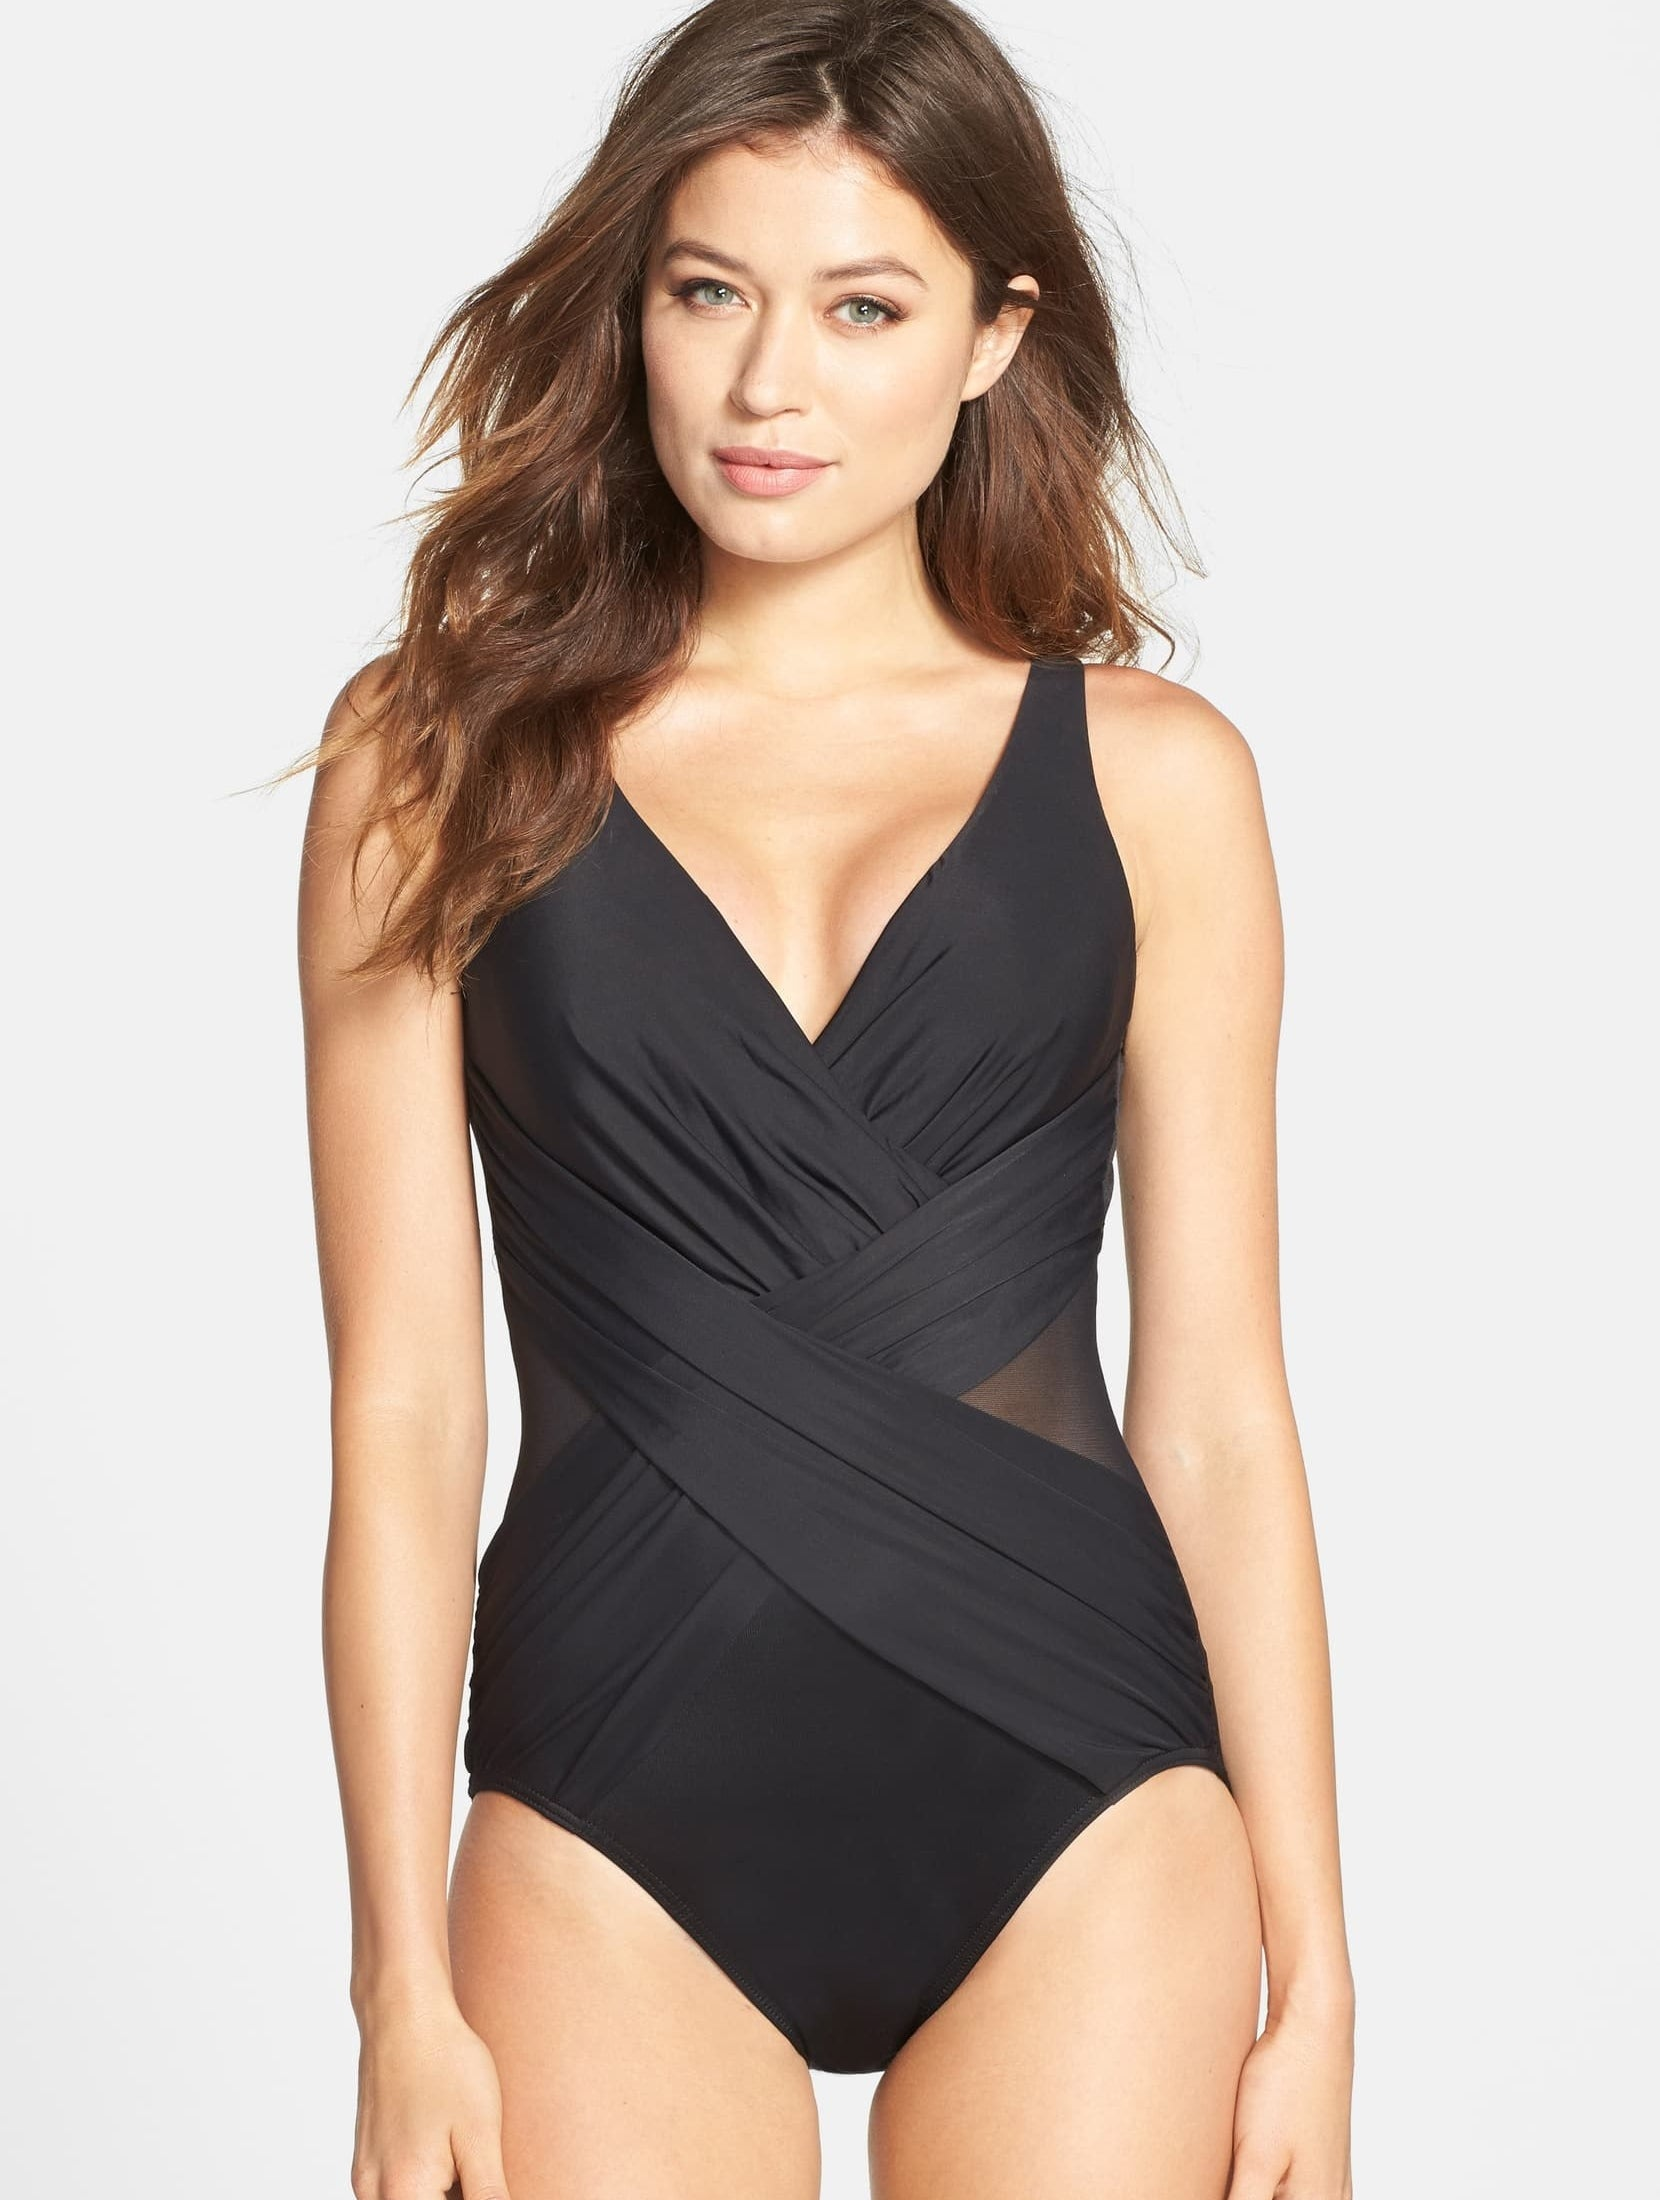 A person wearing the swimsuit in black